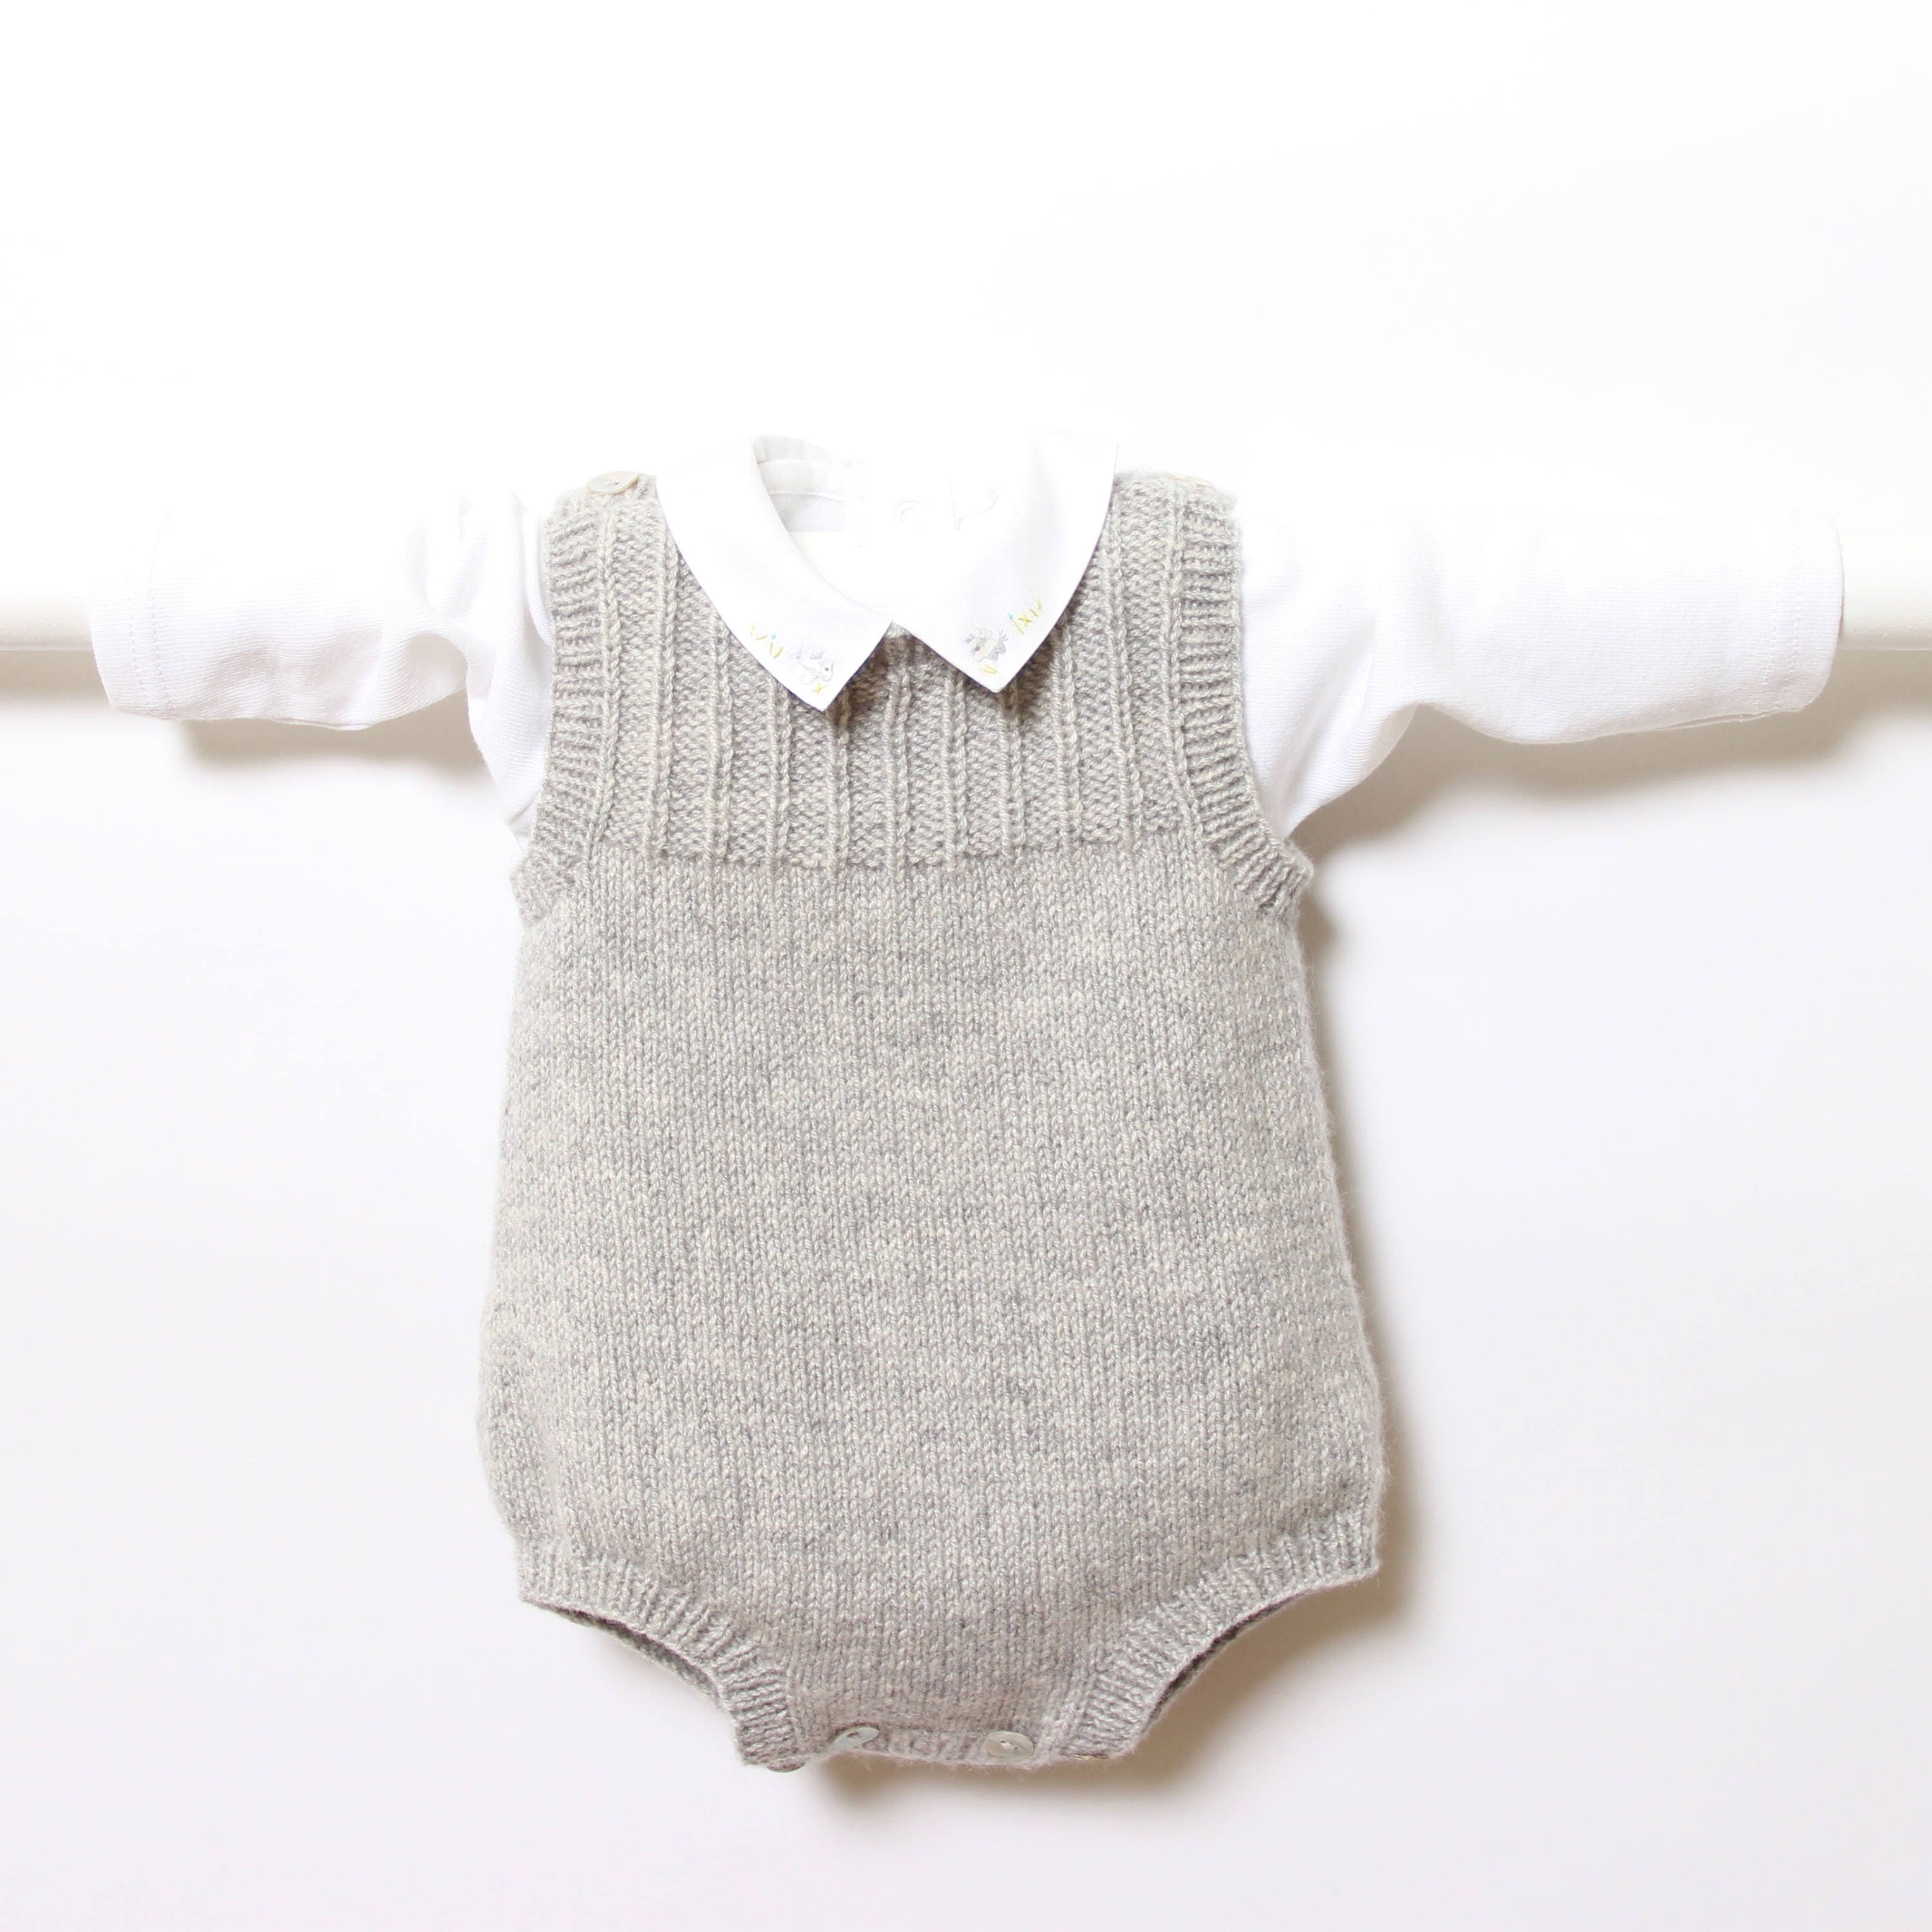 41 / Baby Romper / Knitting Pattern Instructions in ...